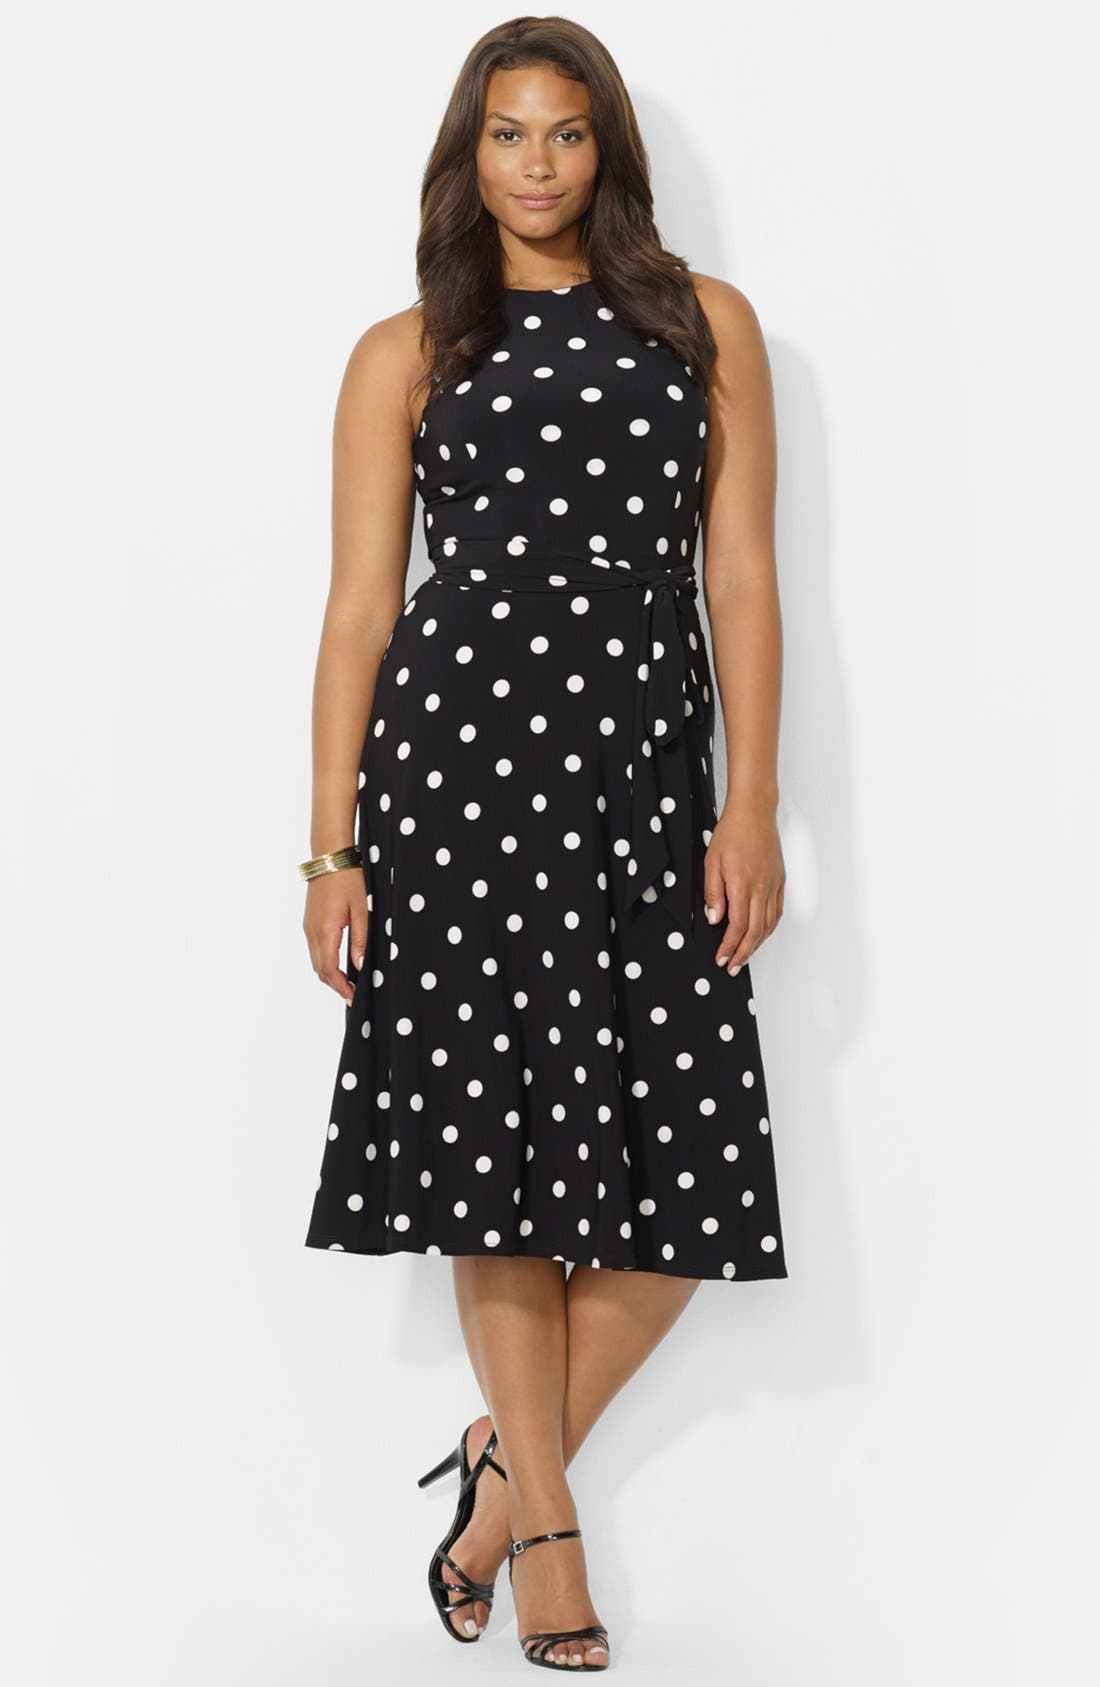 Alternate Image 1 Selected - Lauren Ralph Lauren Polka Dot Jersey Fit & Flare Dress (Plus Size)